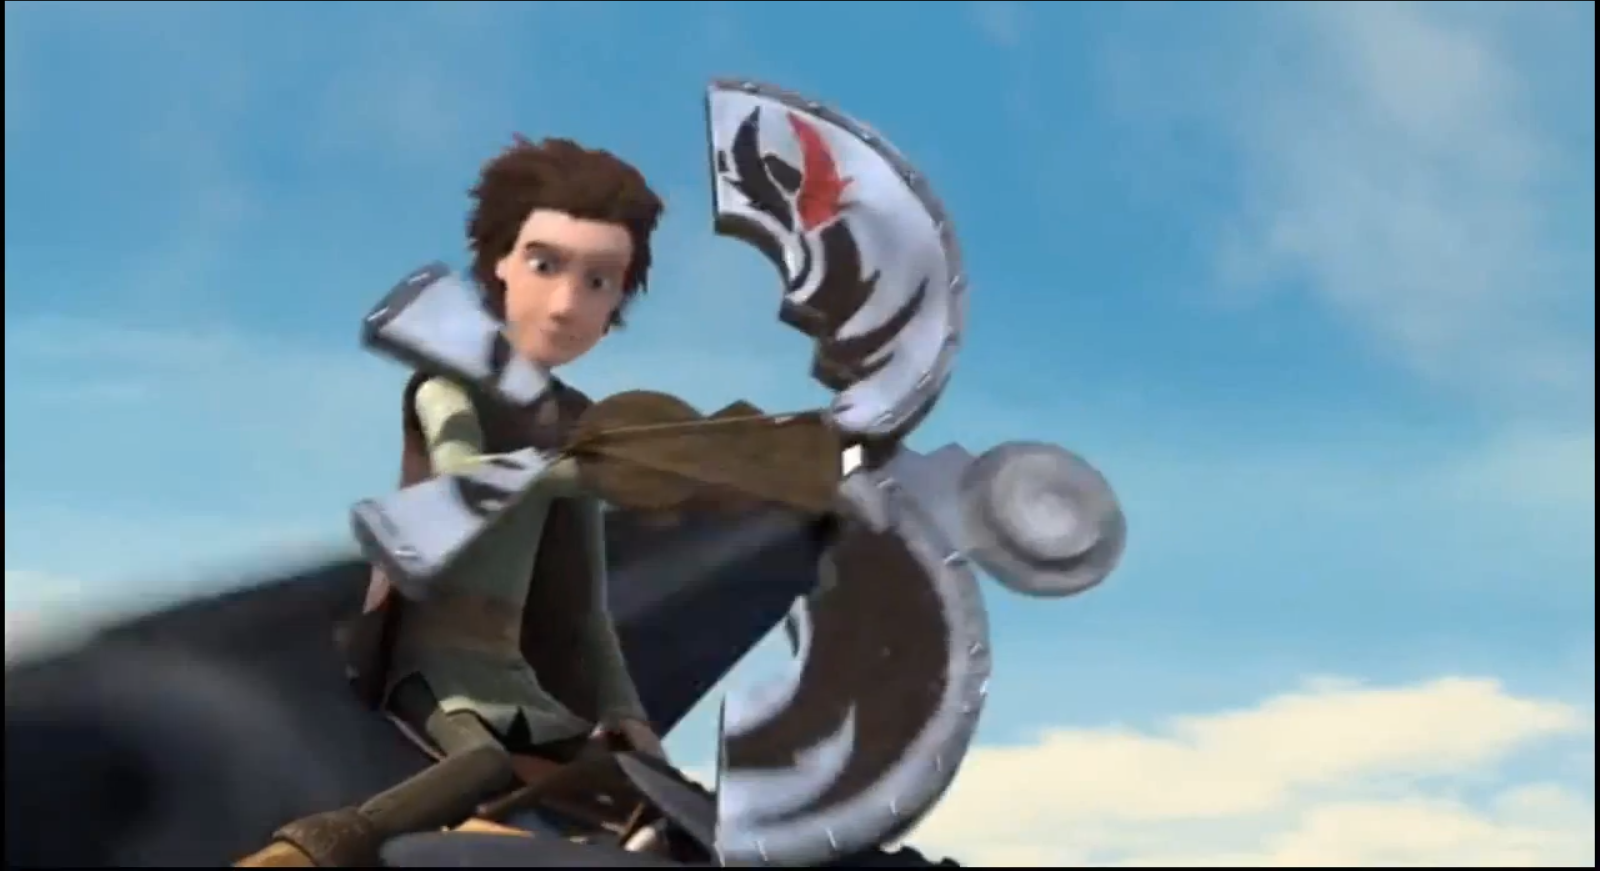 Does anyone notice how when on crossbow-mode, the shield takes on the form of a Night Fury? I love Dreamworks and Hiccup! XD